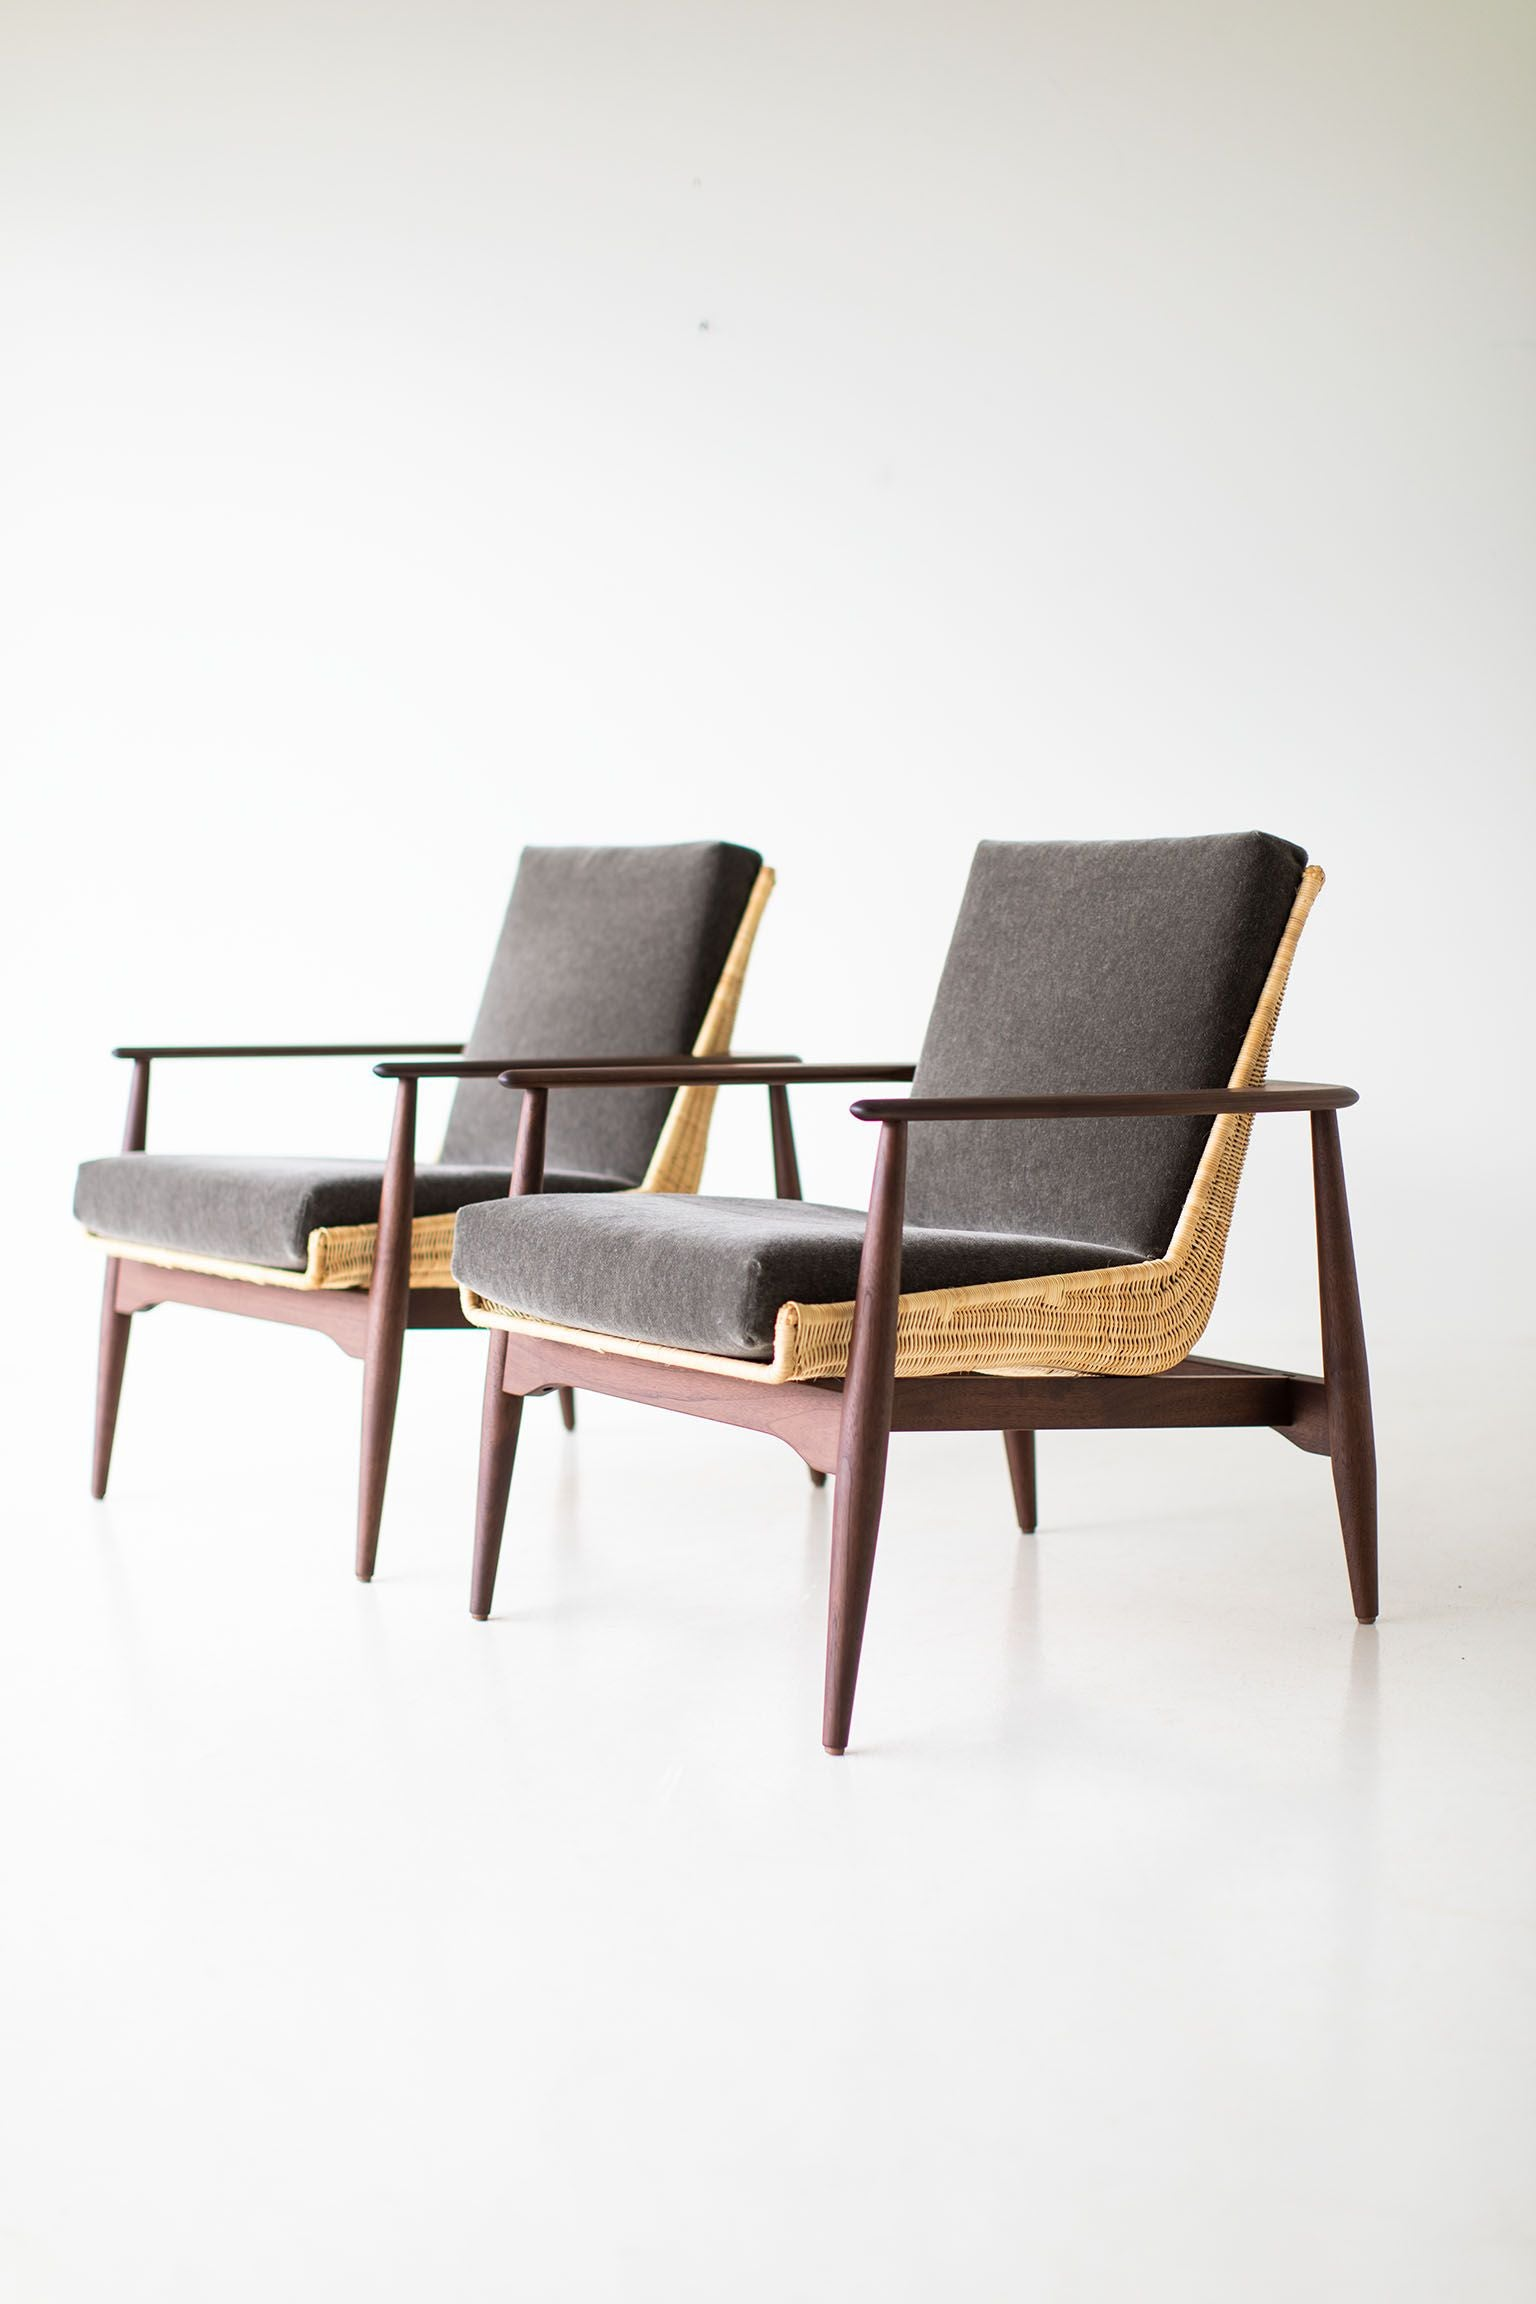 Lawrence-Peabody-Wicker-Lounge-Chairs-07